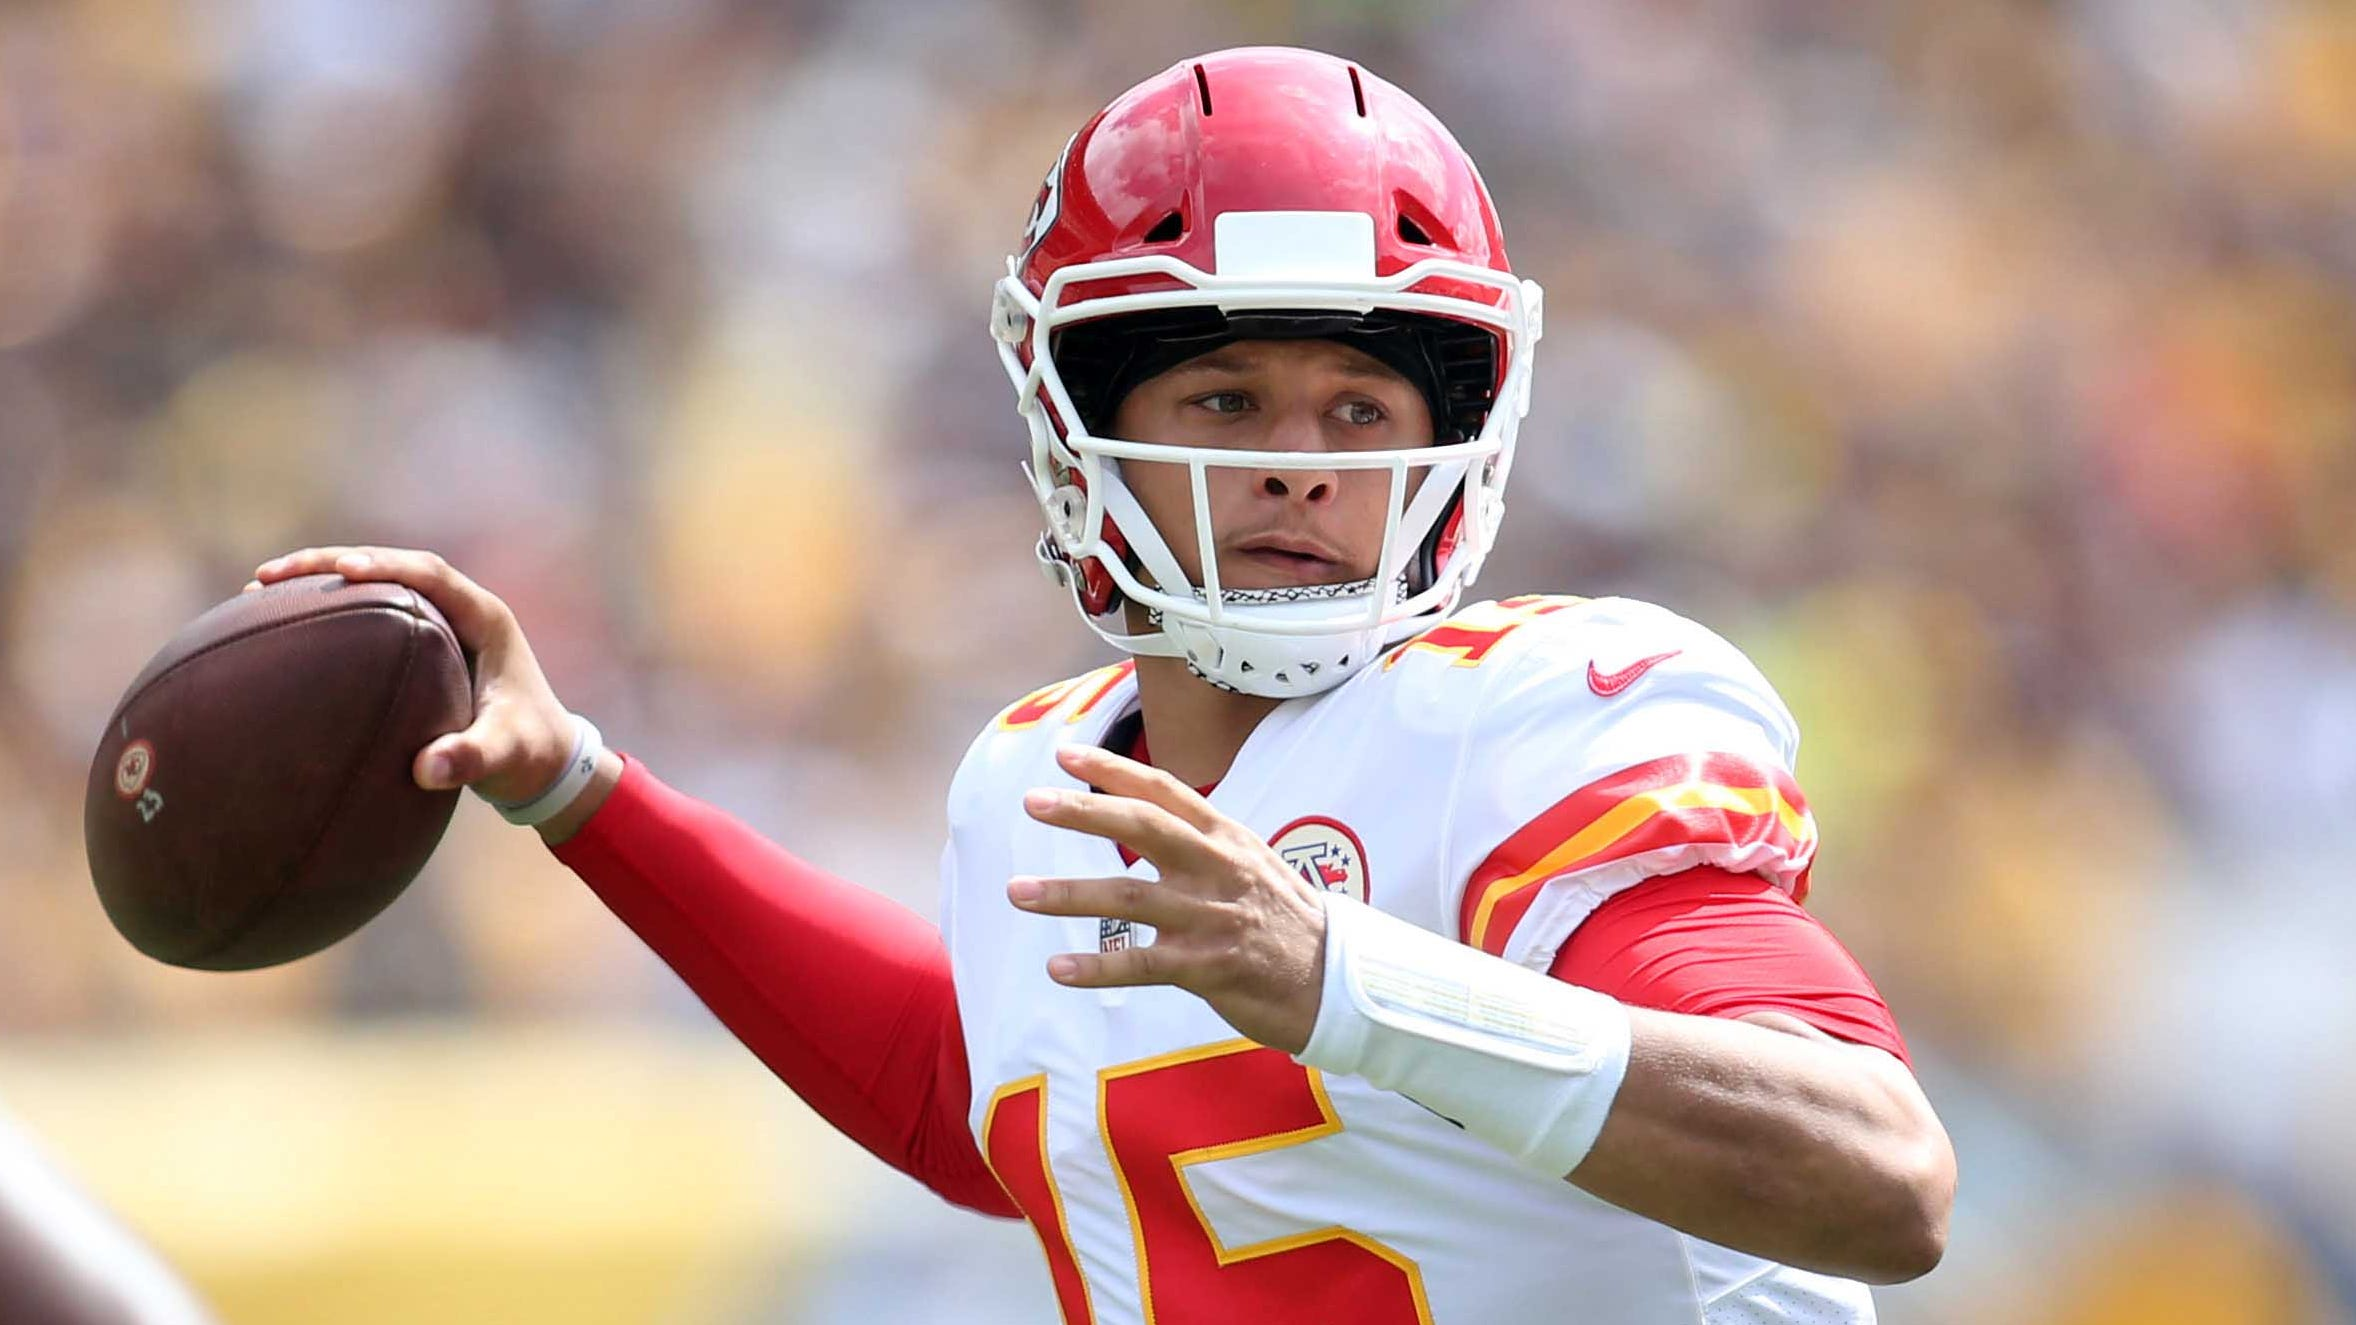 Fantasy Football Chiefs Qb Patrick Mahomes Steals The Show In Week 2